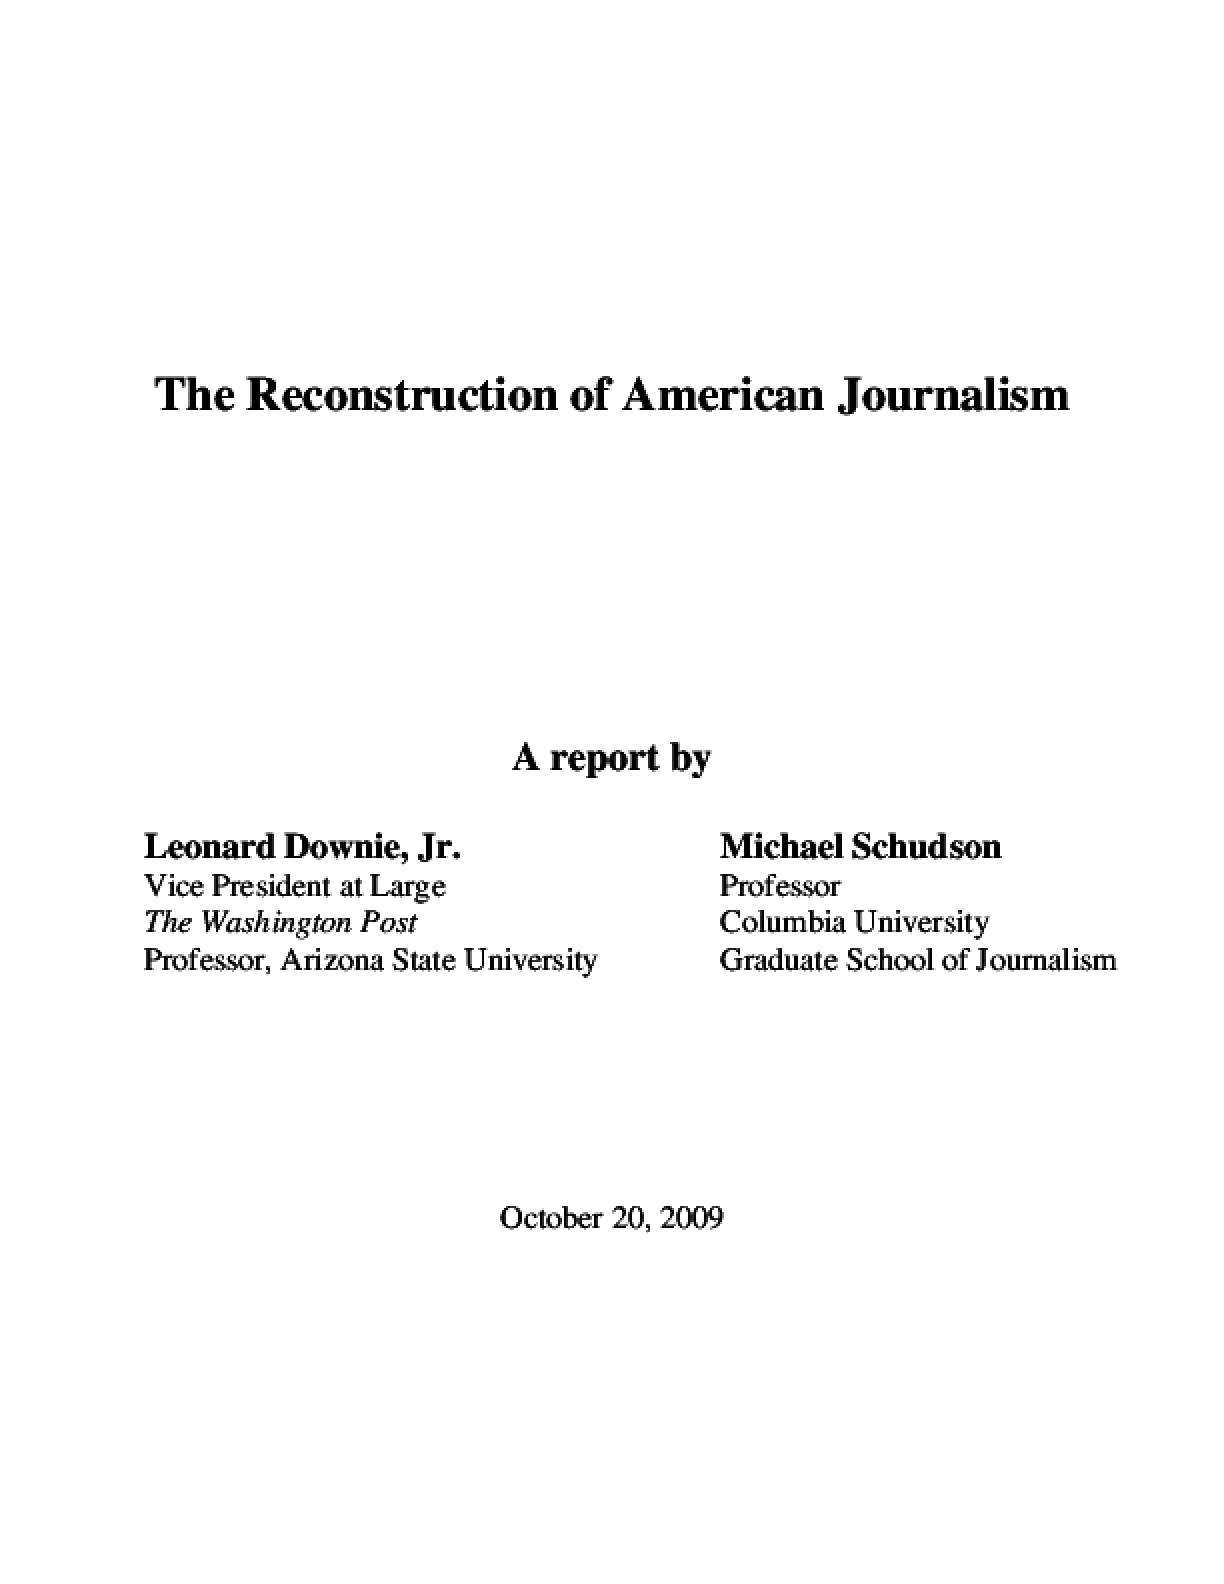 The Reconstruction of American Journalism